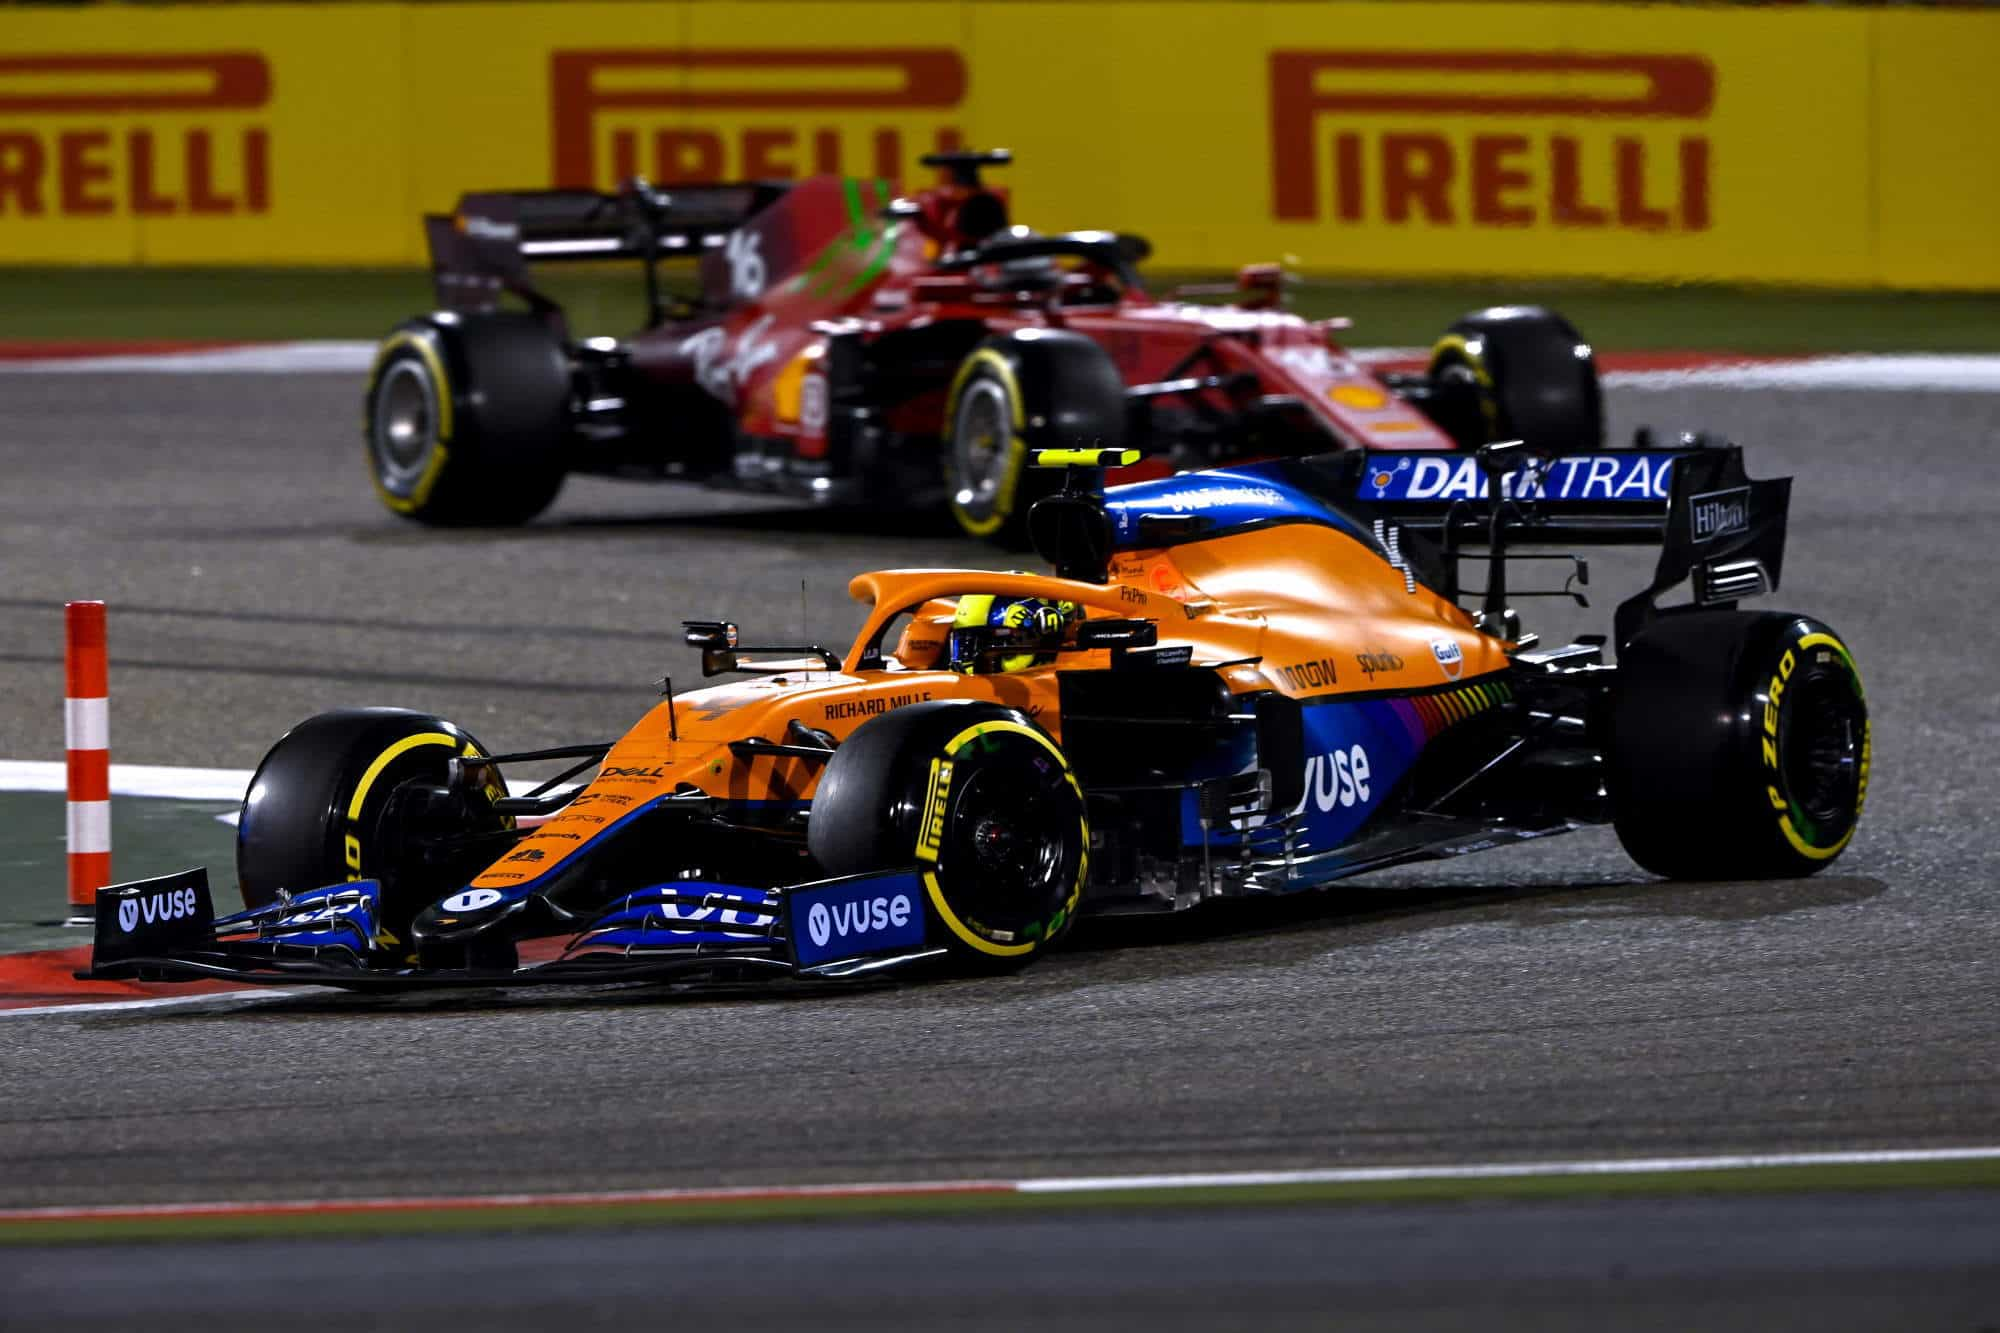 2021 Bahrain GP Norris leads Leclerc race on mediums C3 PIrelli Photo McLaren